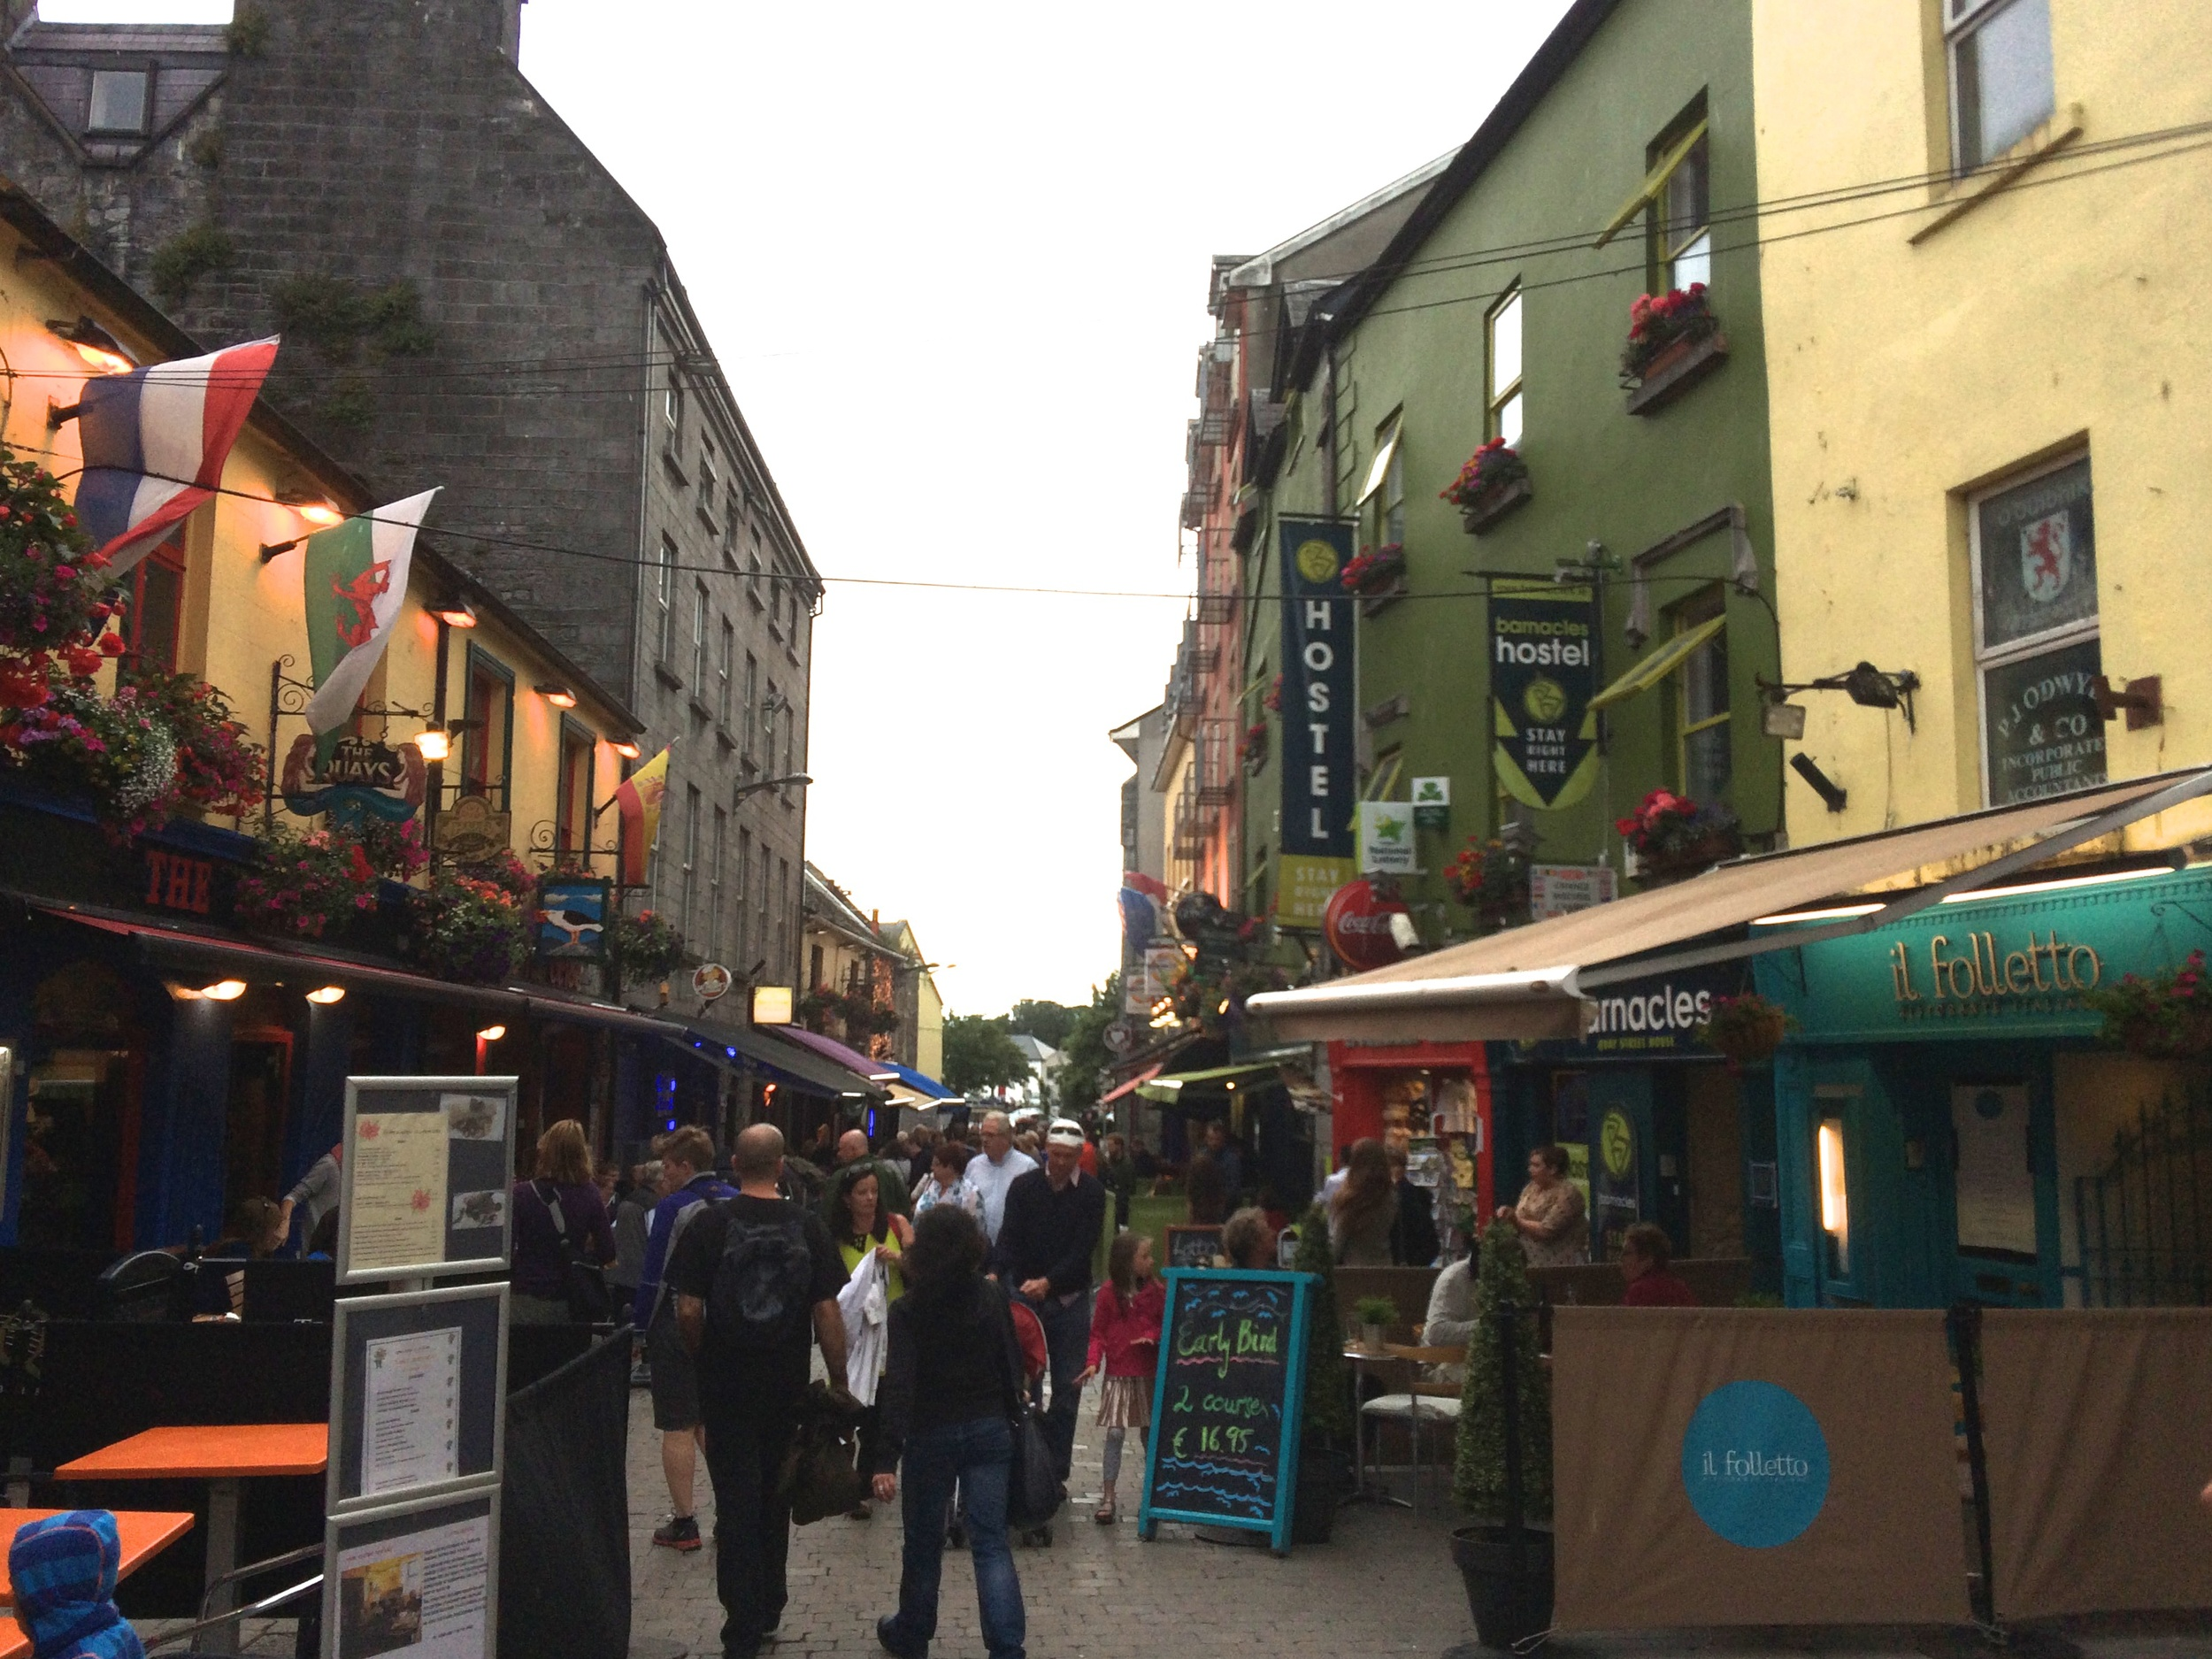 Barnacles Hostel (the green building) on Shop Street in Galway